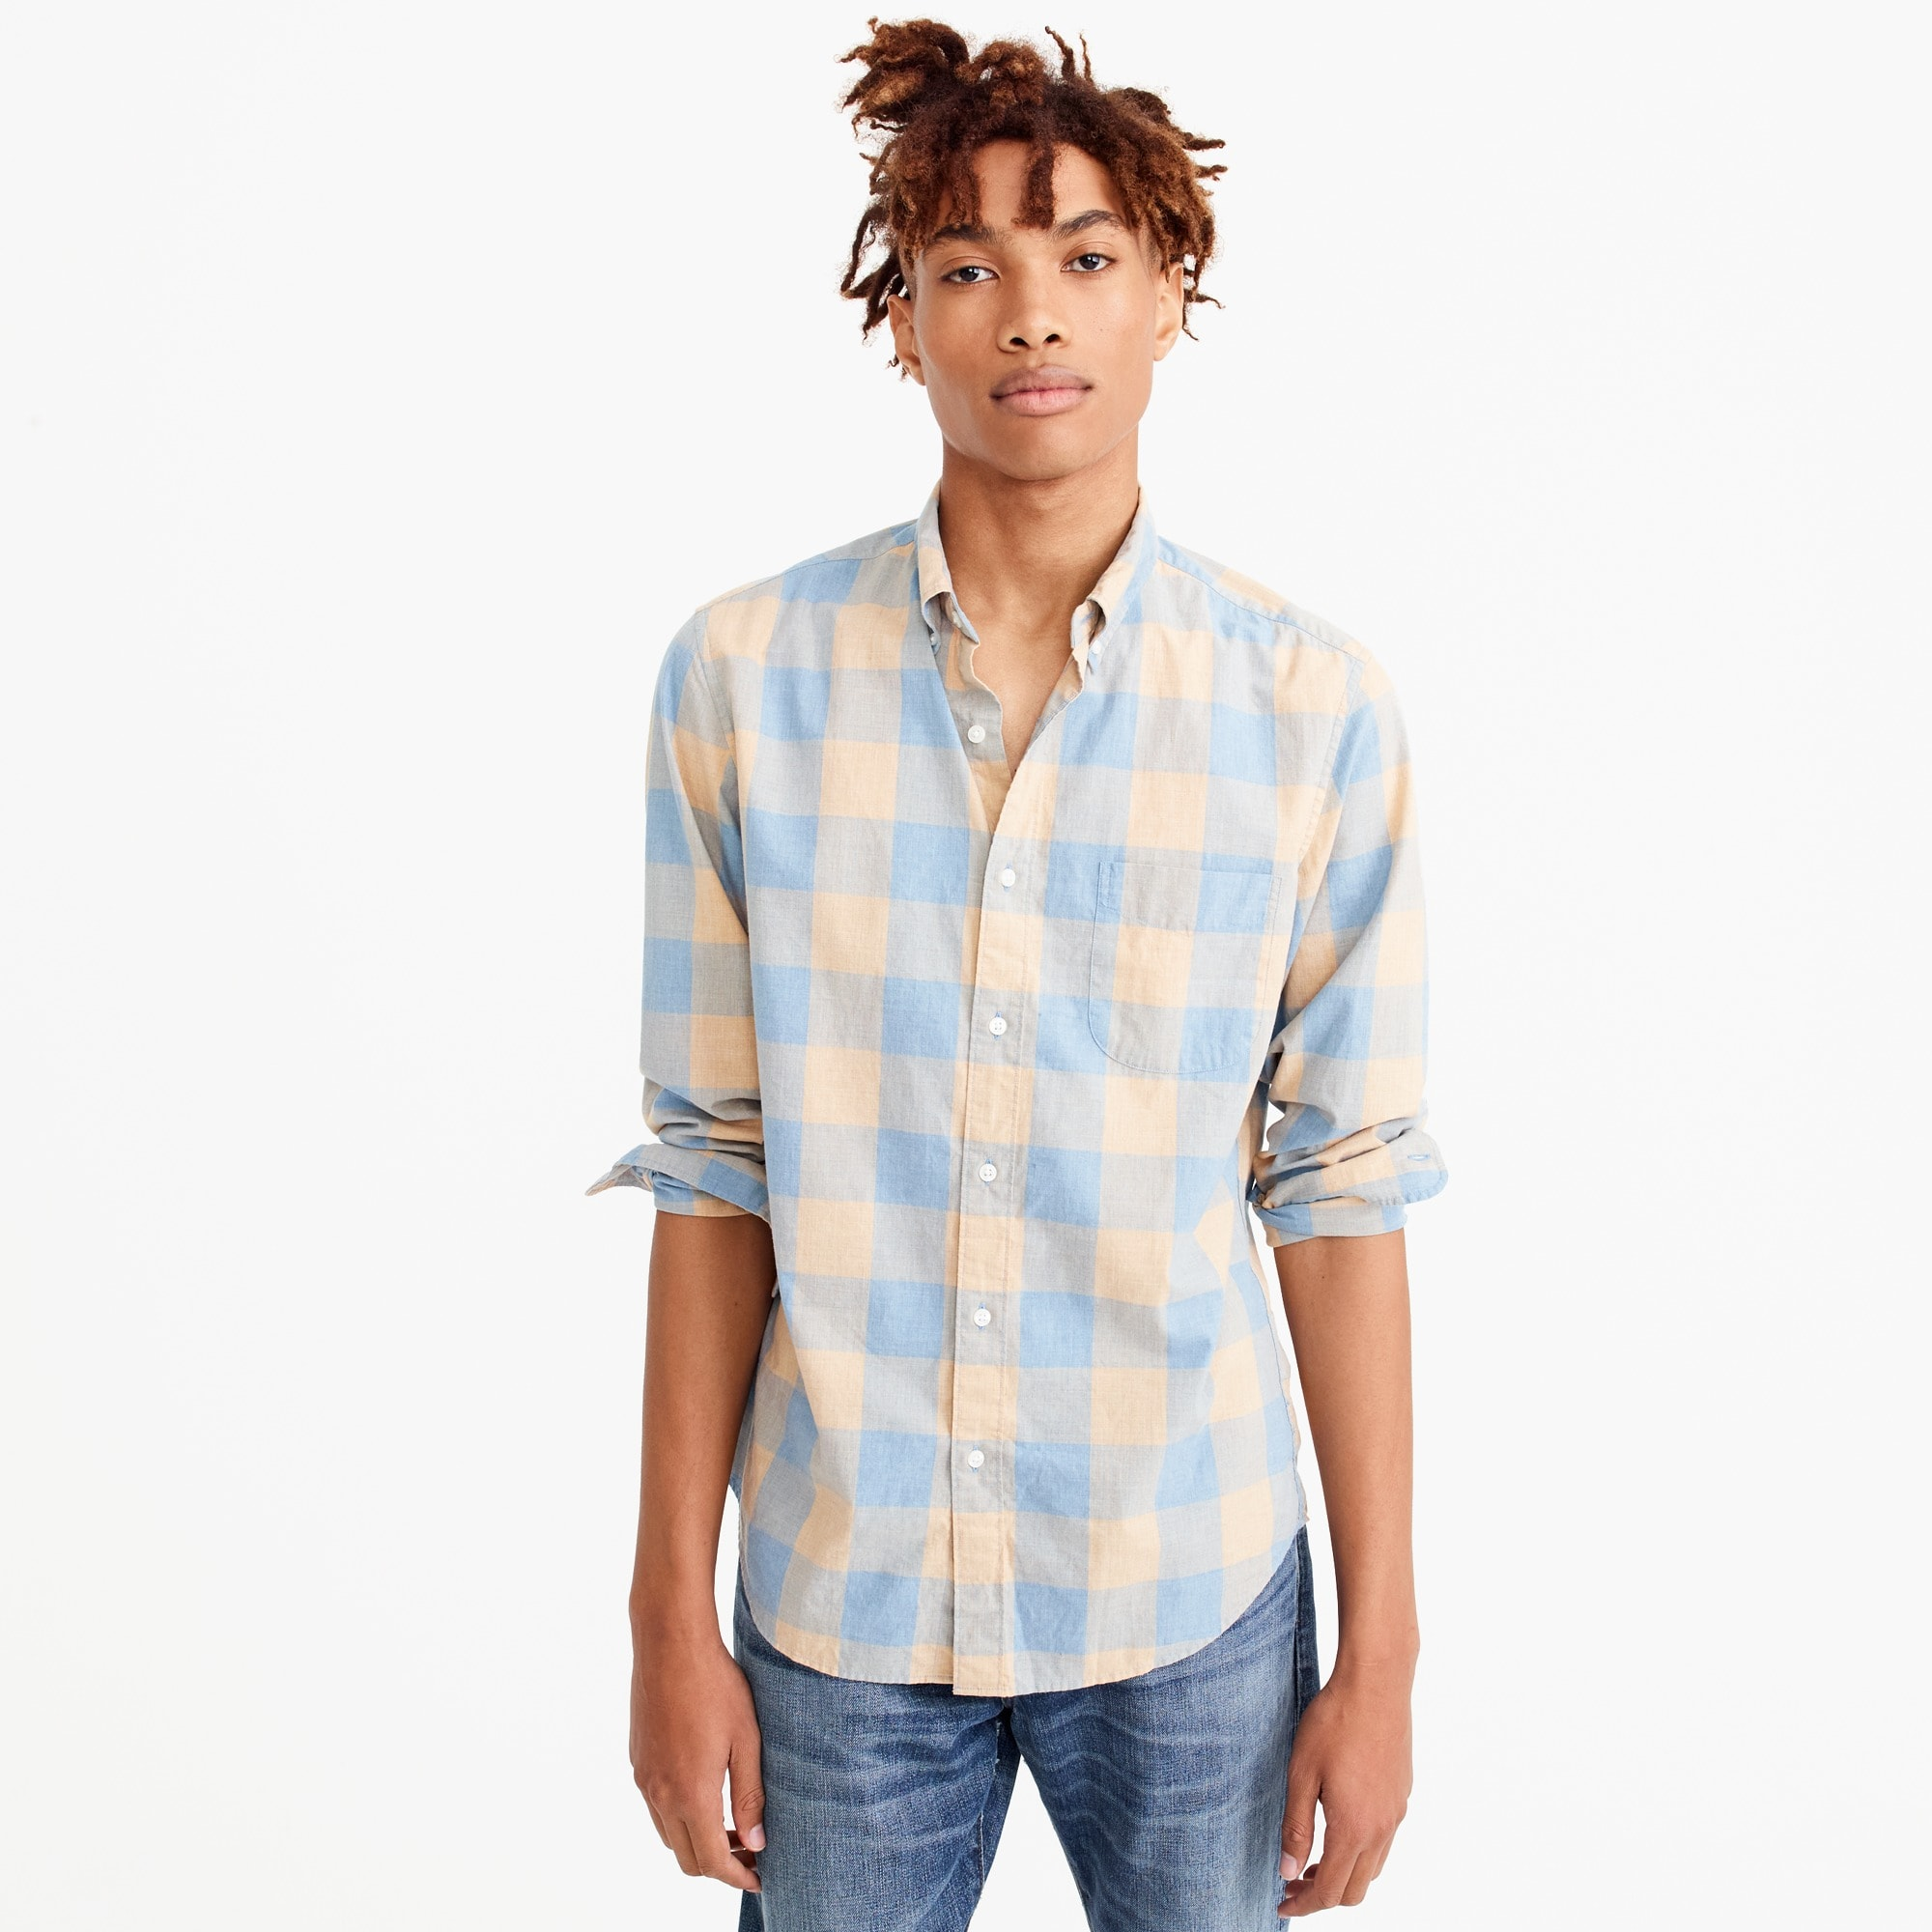 Image 1 for Slim stretch Secret Wash shirt in heather poplin buffalo plaid